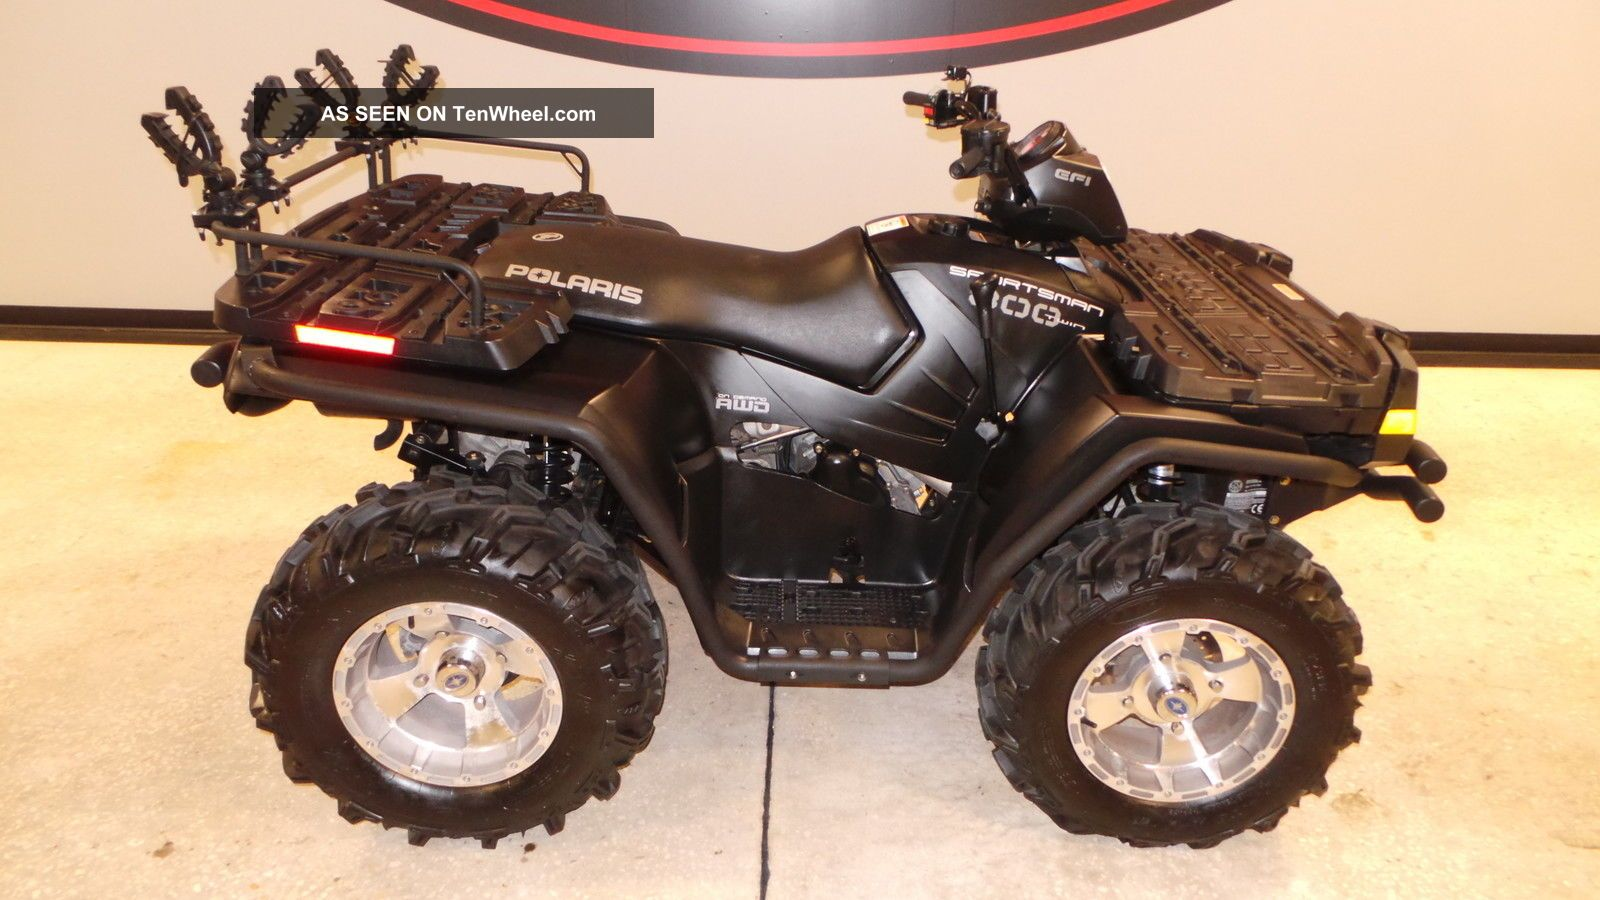 2007 Polaris Sportsman 800 Polaris photo